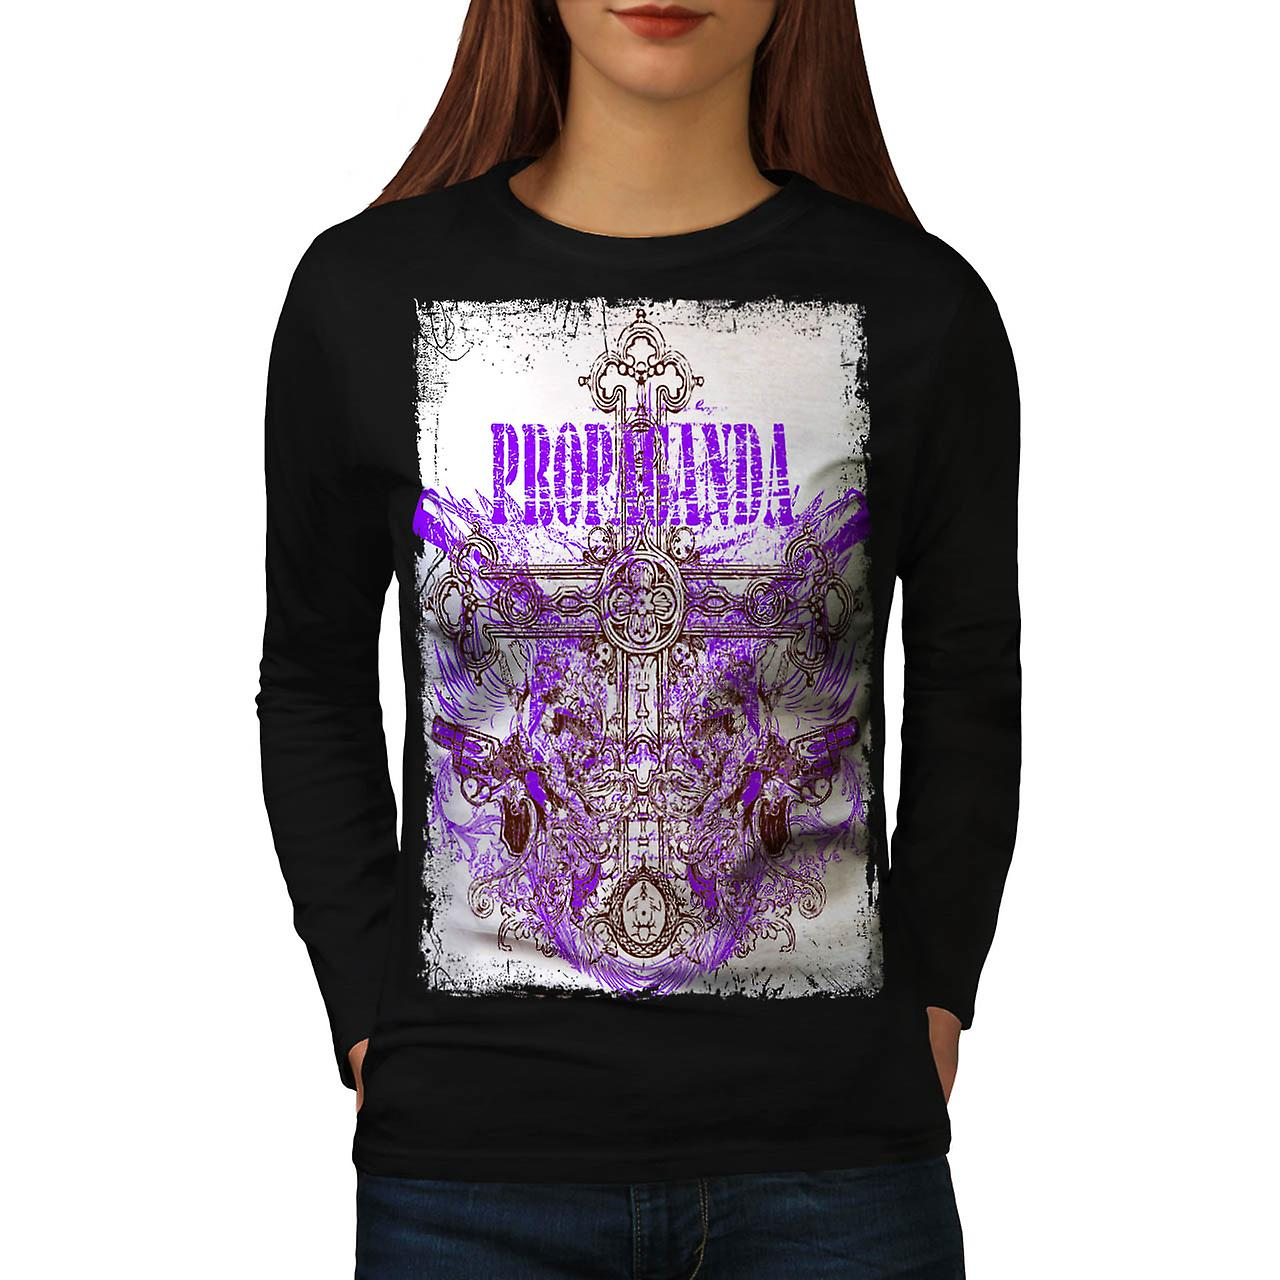 Propaganda Graveyard Grave Stone Women Black Long Sleeve T-shirt | Wellcoda